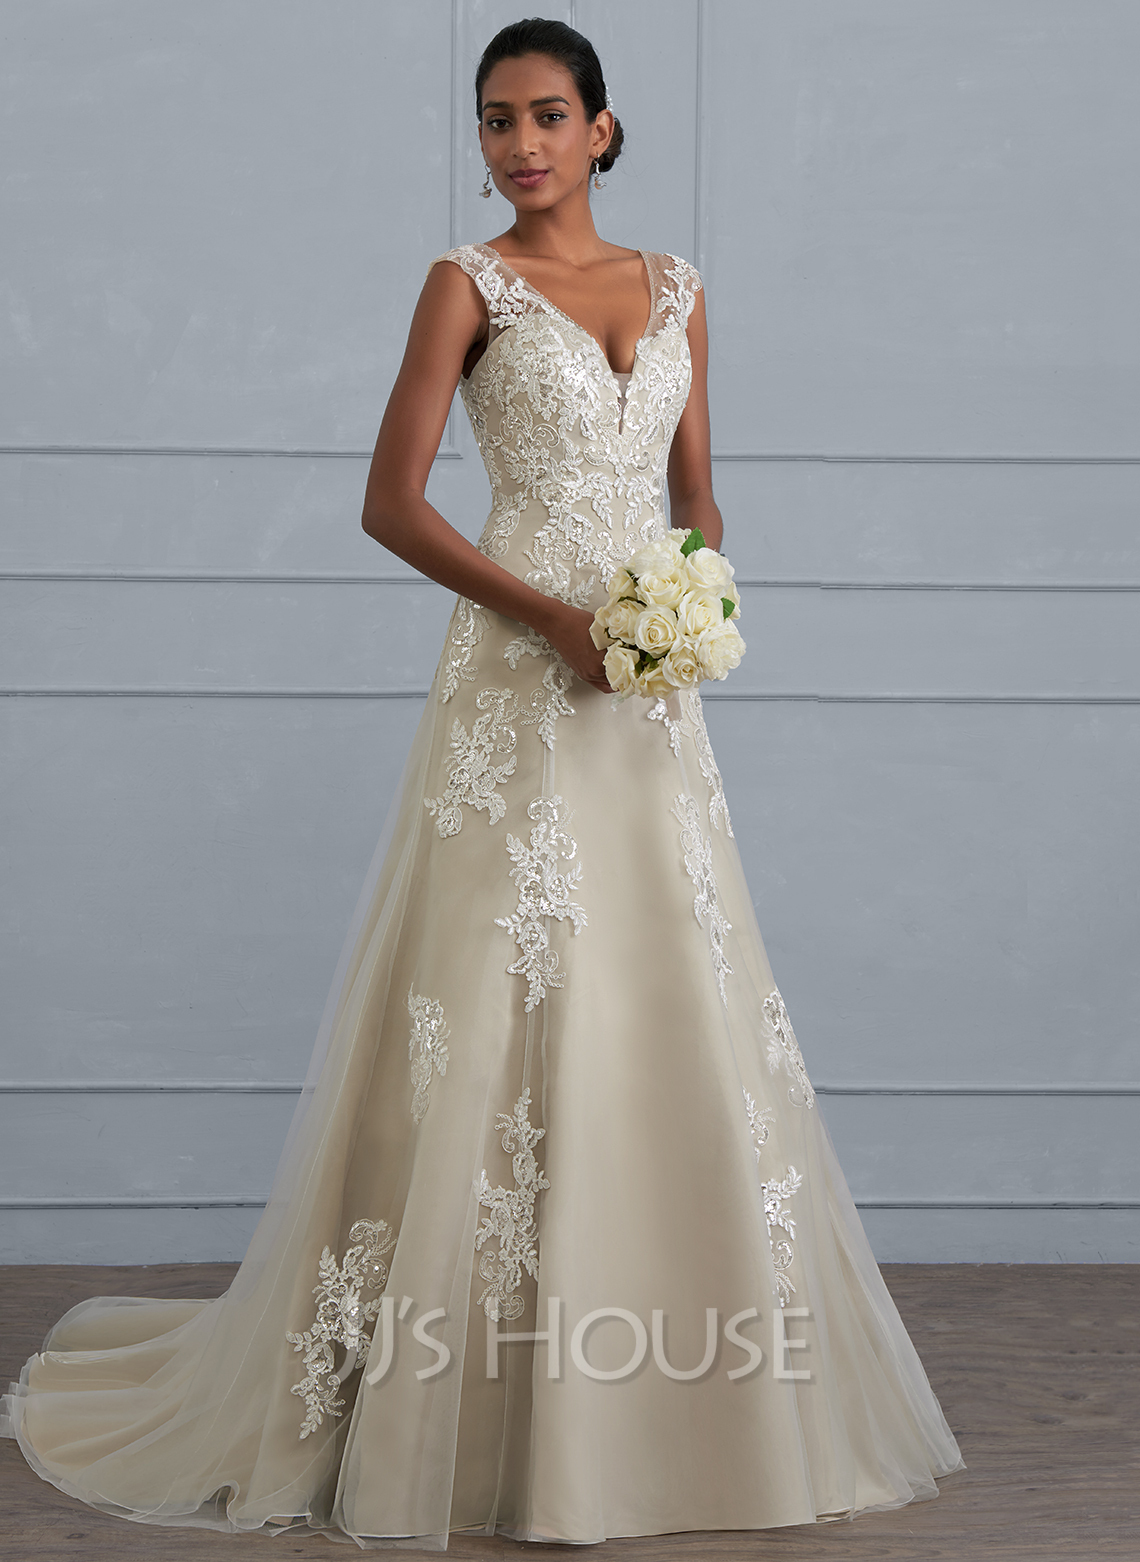 A Lineprincess V Neck Court Train Tulle Lace Wedding Dress With Beading Sequins 002117023